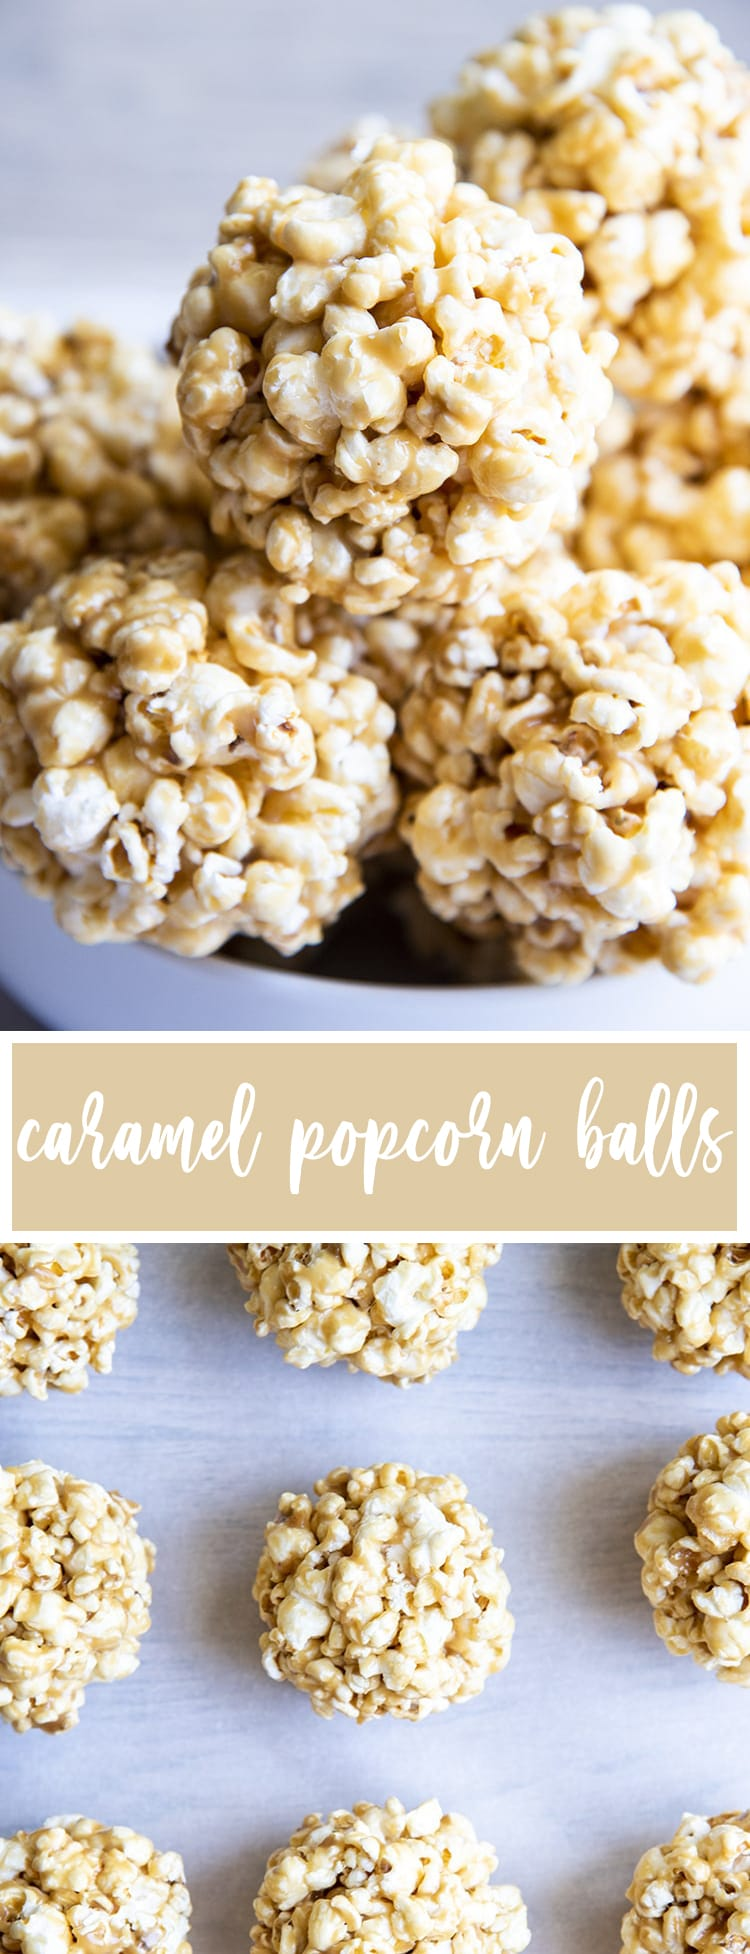 Two photos of caramel popcorn balls with text in the middle for pinterest.